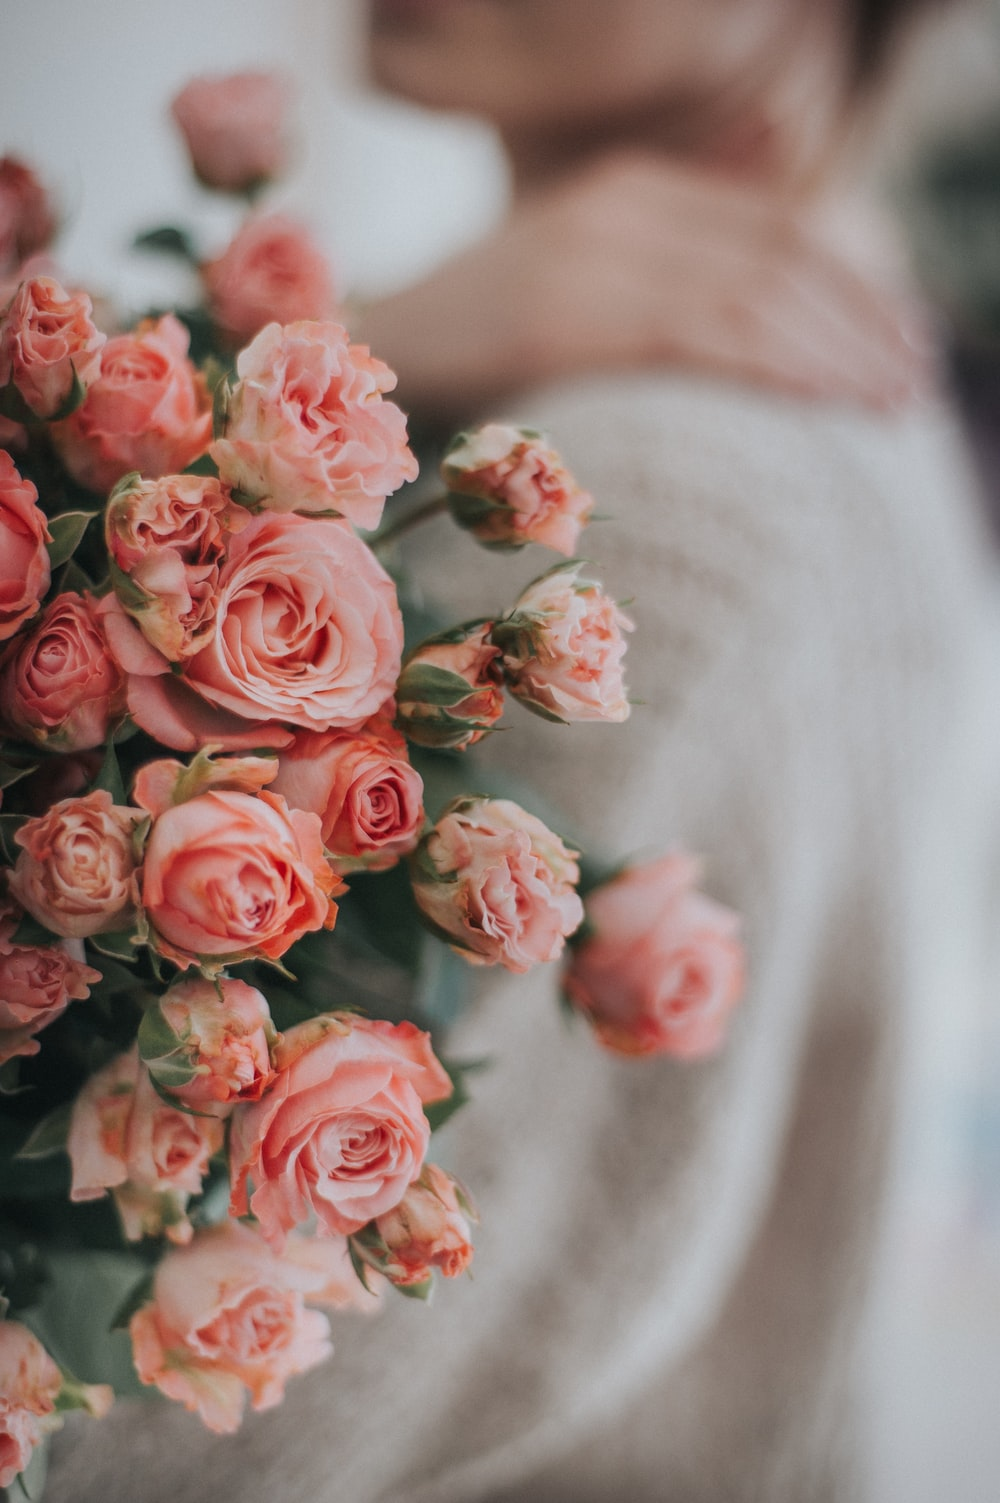 pink roses on white textile